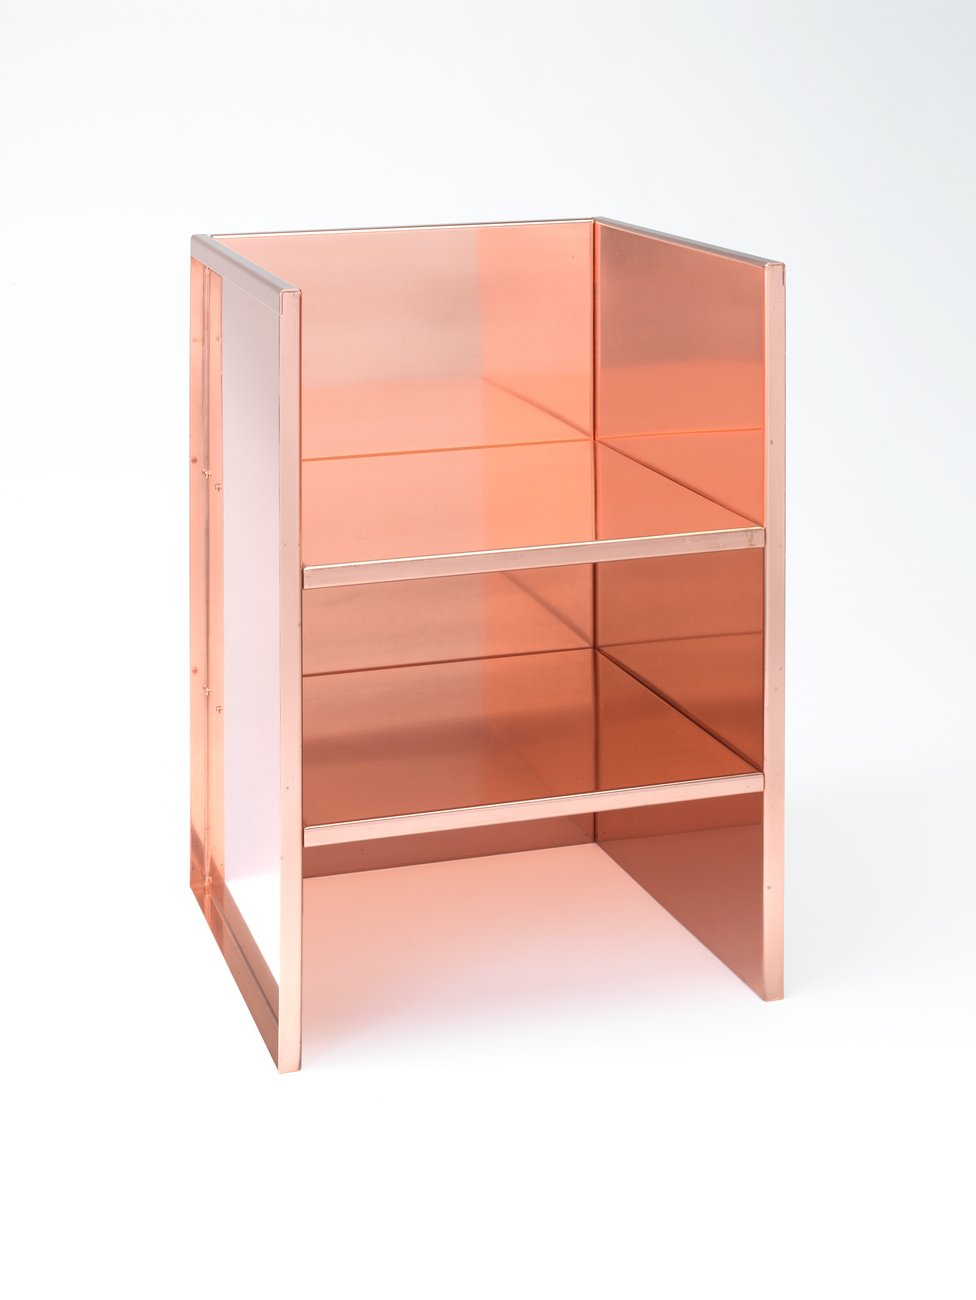 Three-sided vertical copper structure with two copper shelves